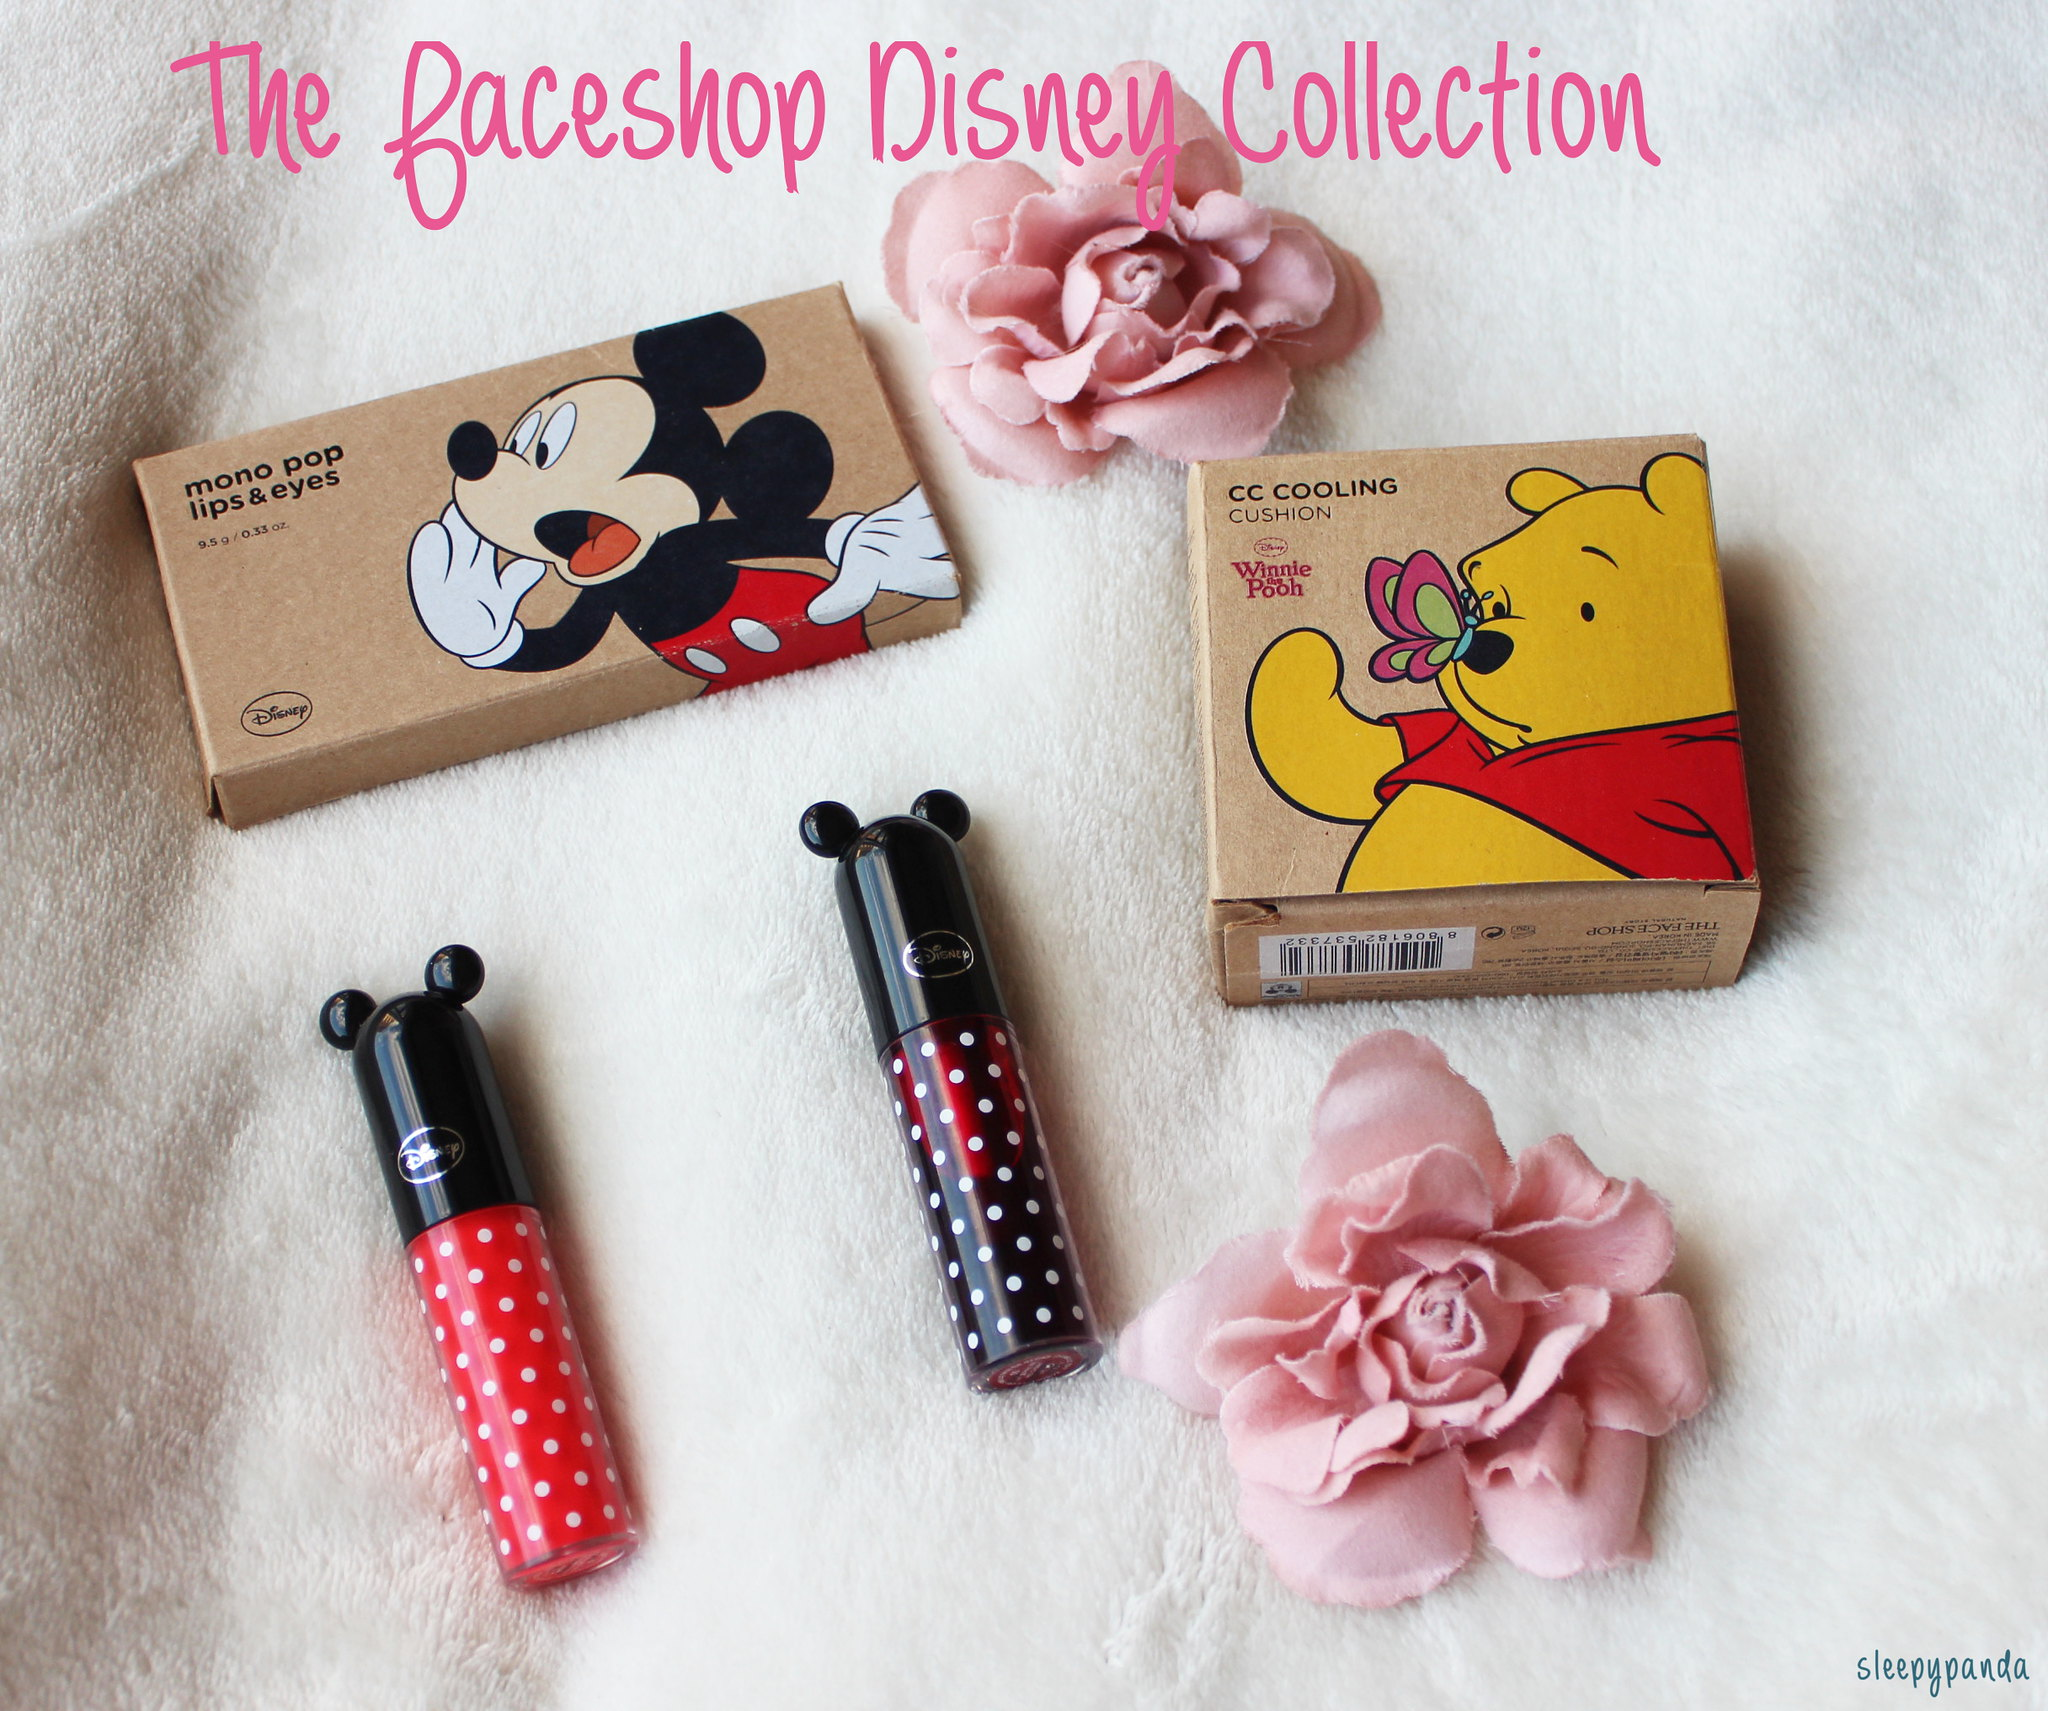 The Faceshop Disney 1